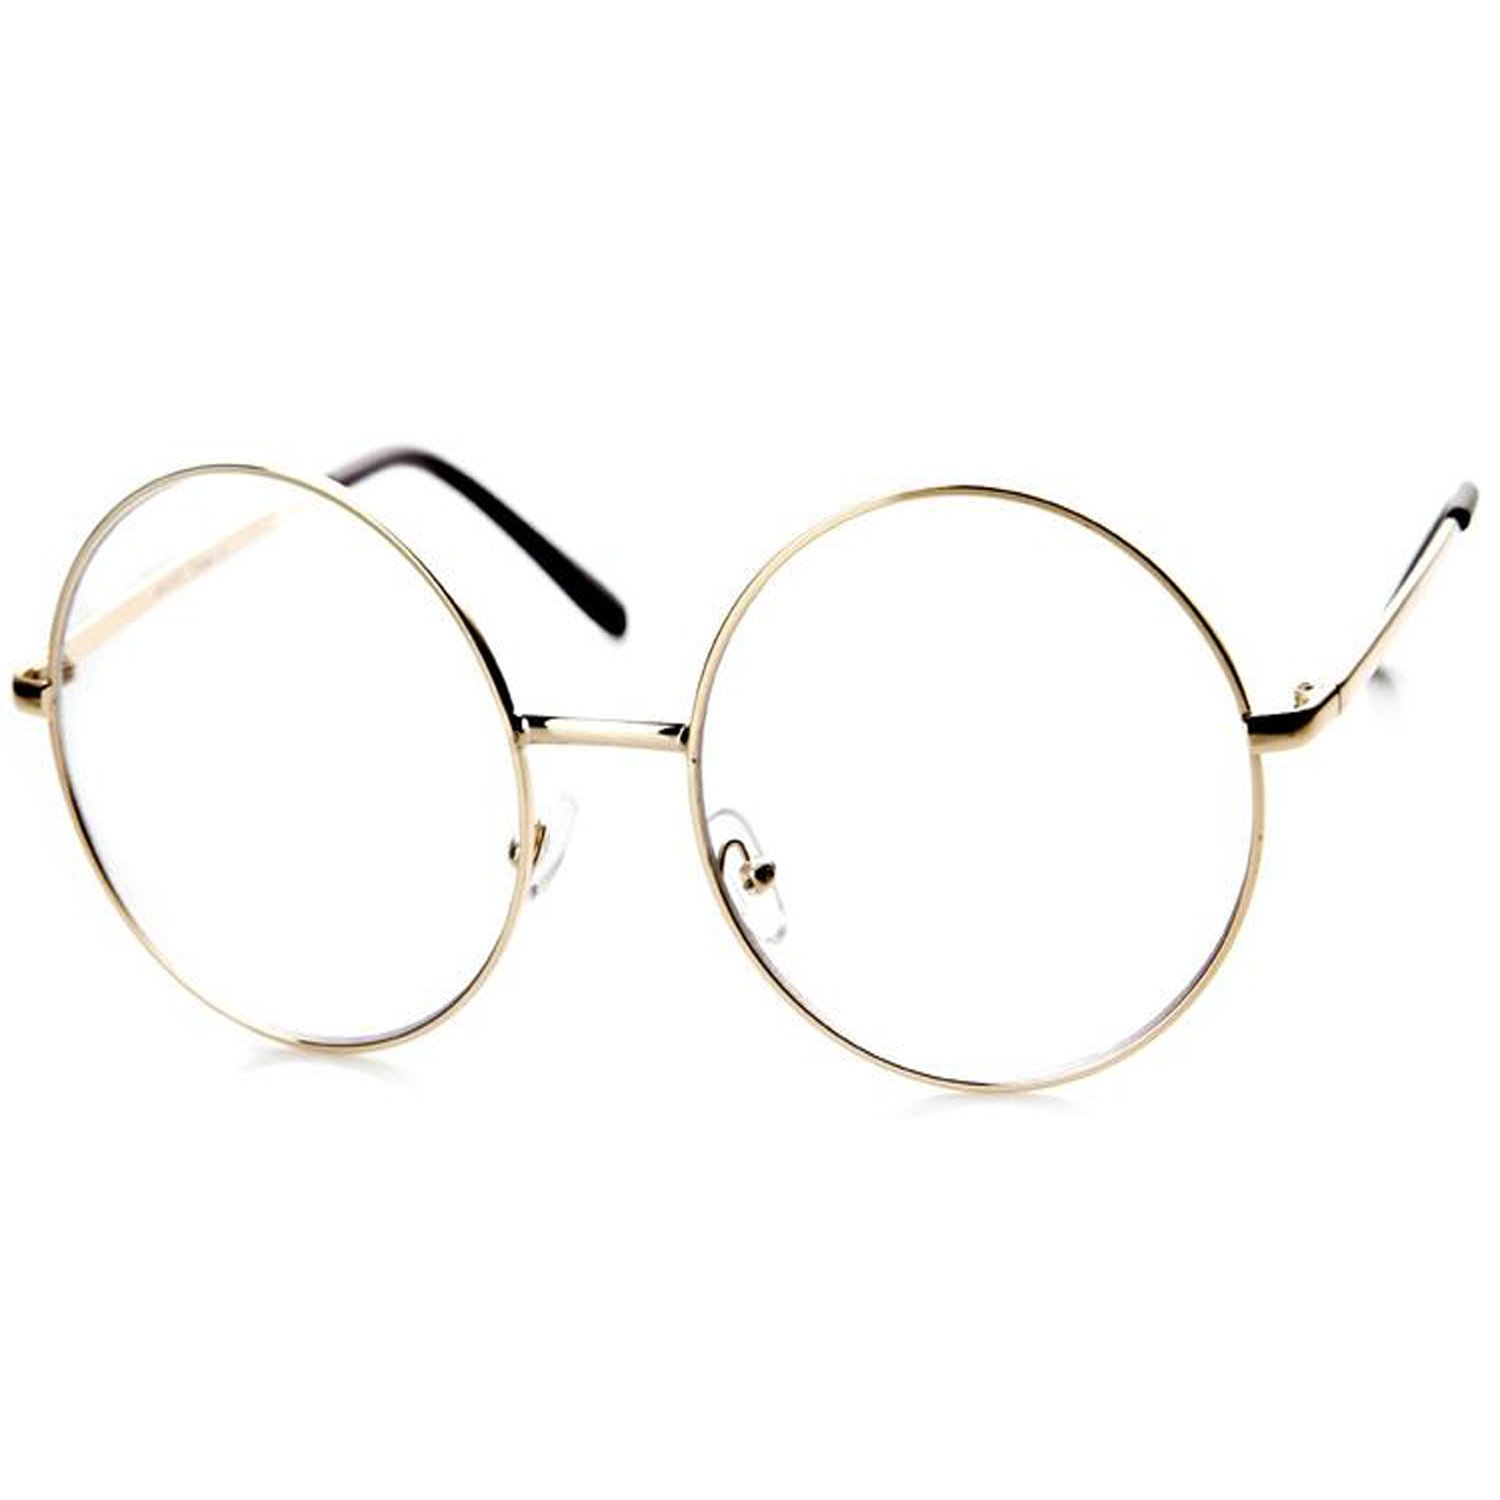 Spectacle Frames: Buy Spects online at best prices in India - Amazon.in